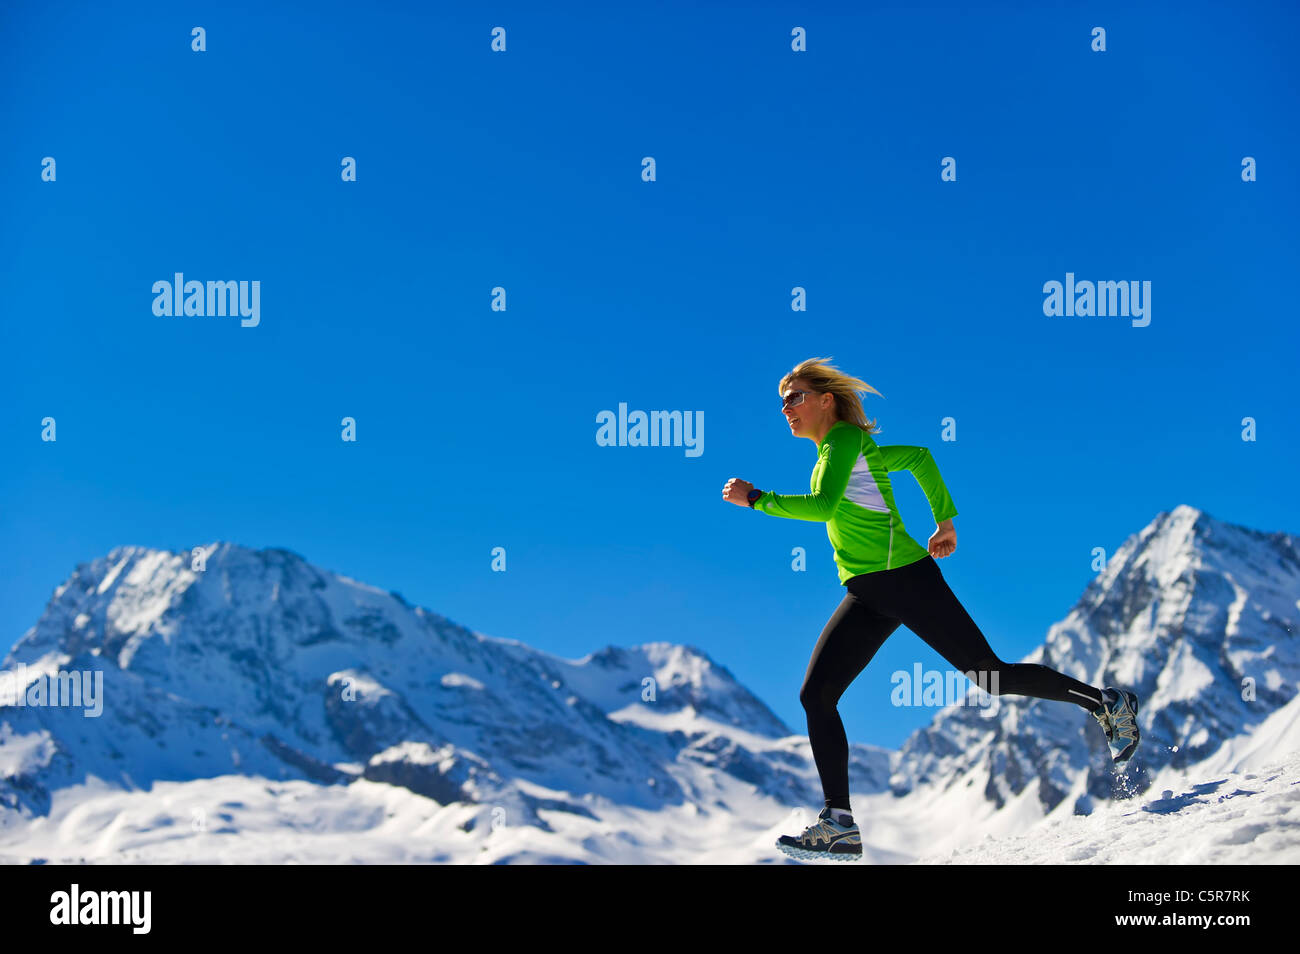 A woman jogging fast over snowy mountains. Stock Photo